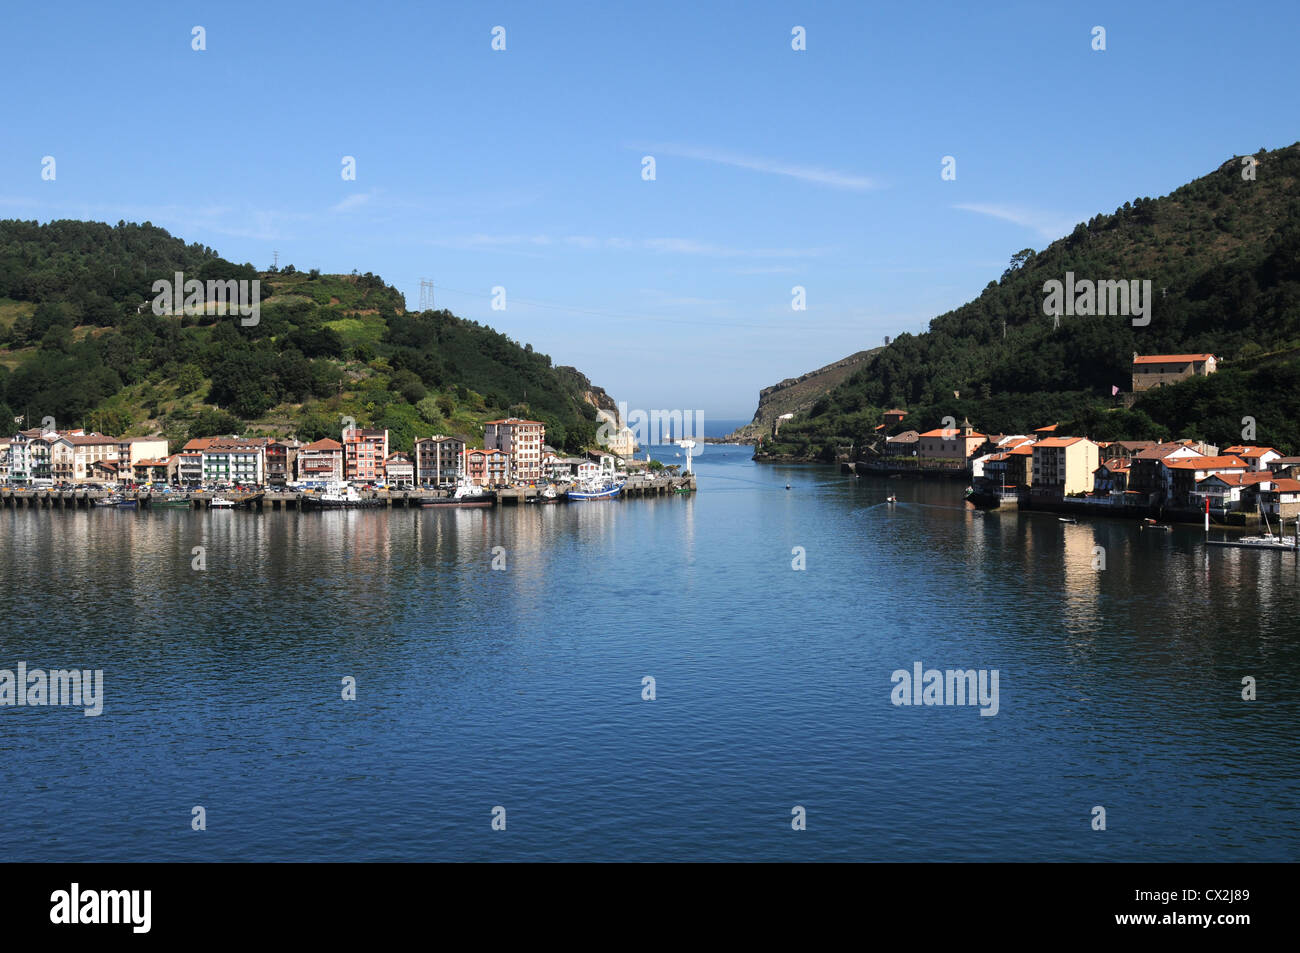 Buildings by the entrance to the harbour at Pasajes, Northern Spain in the heart of the Basque Country - Stock Image